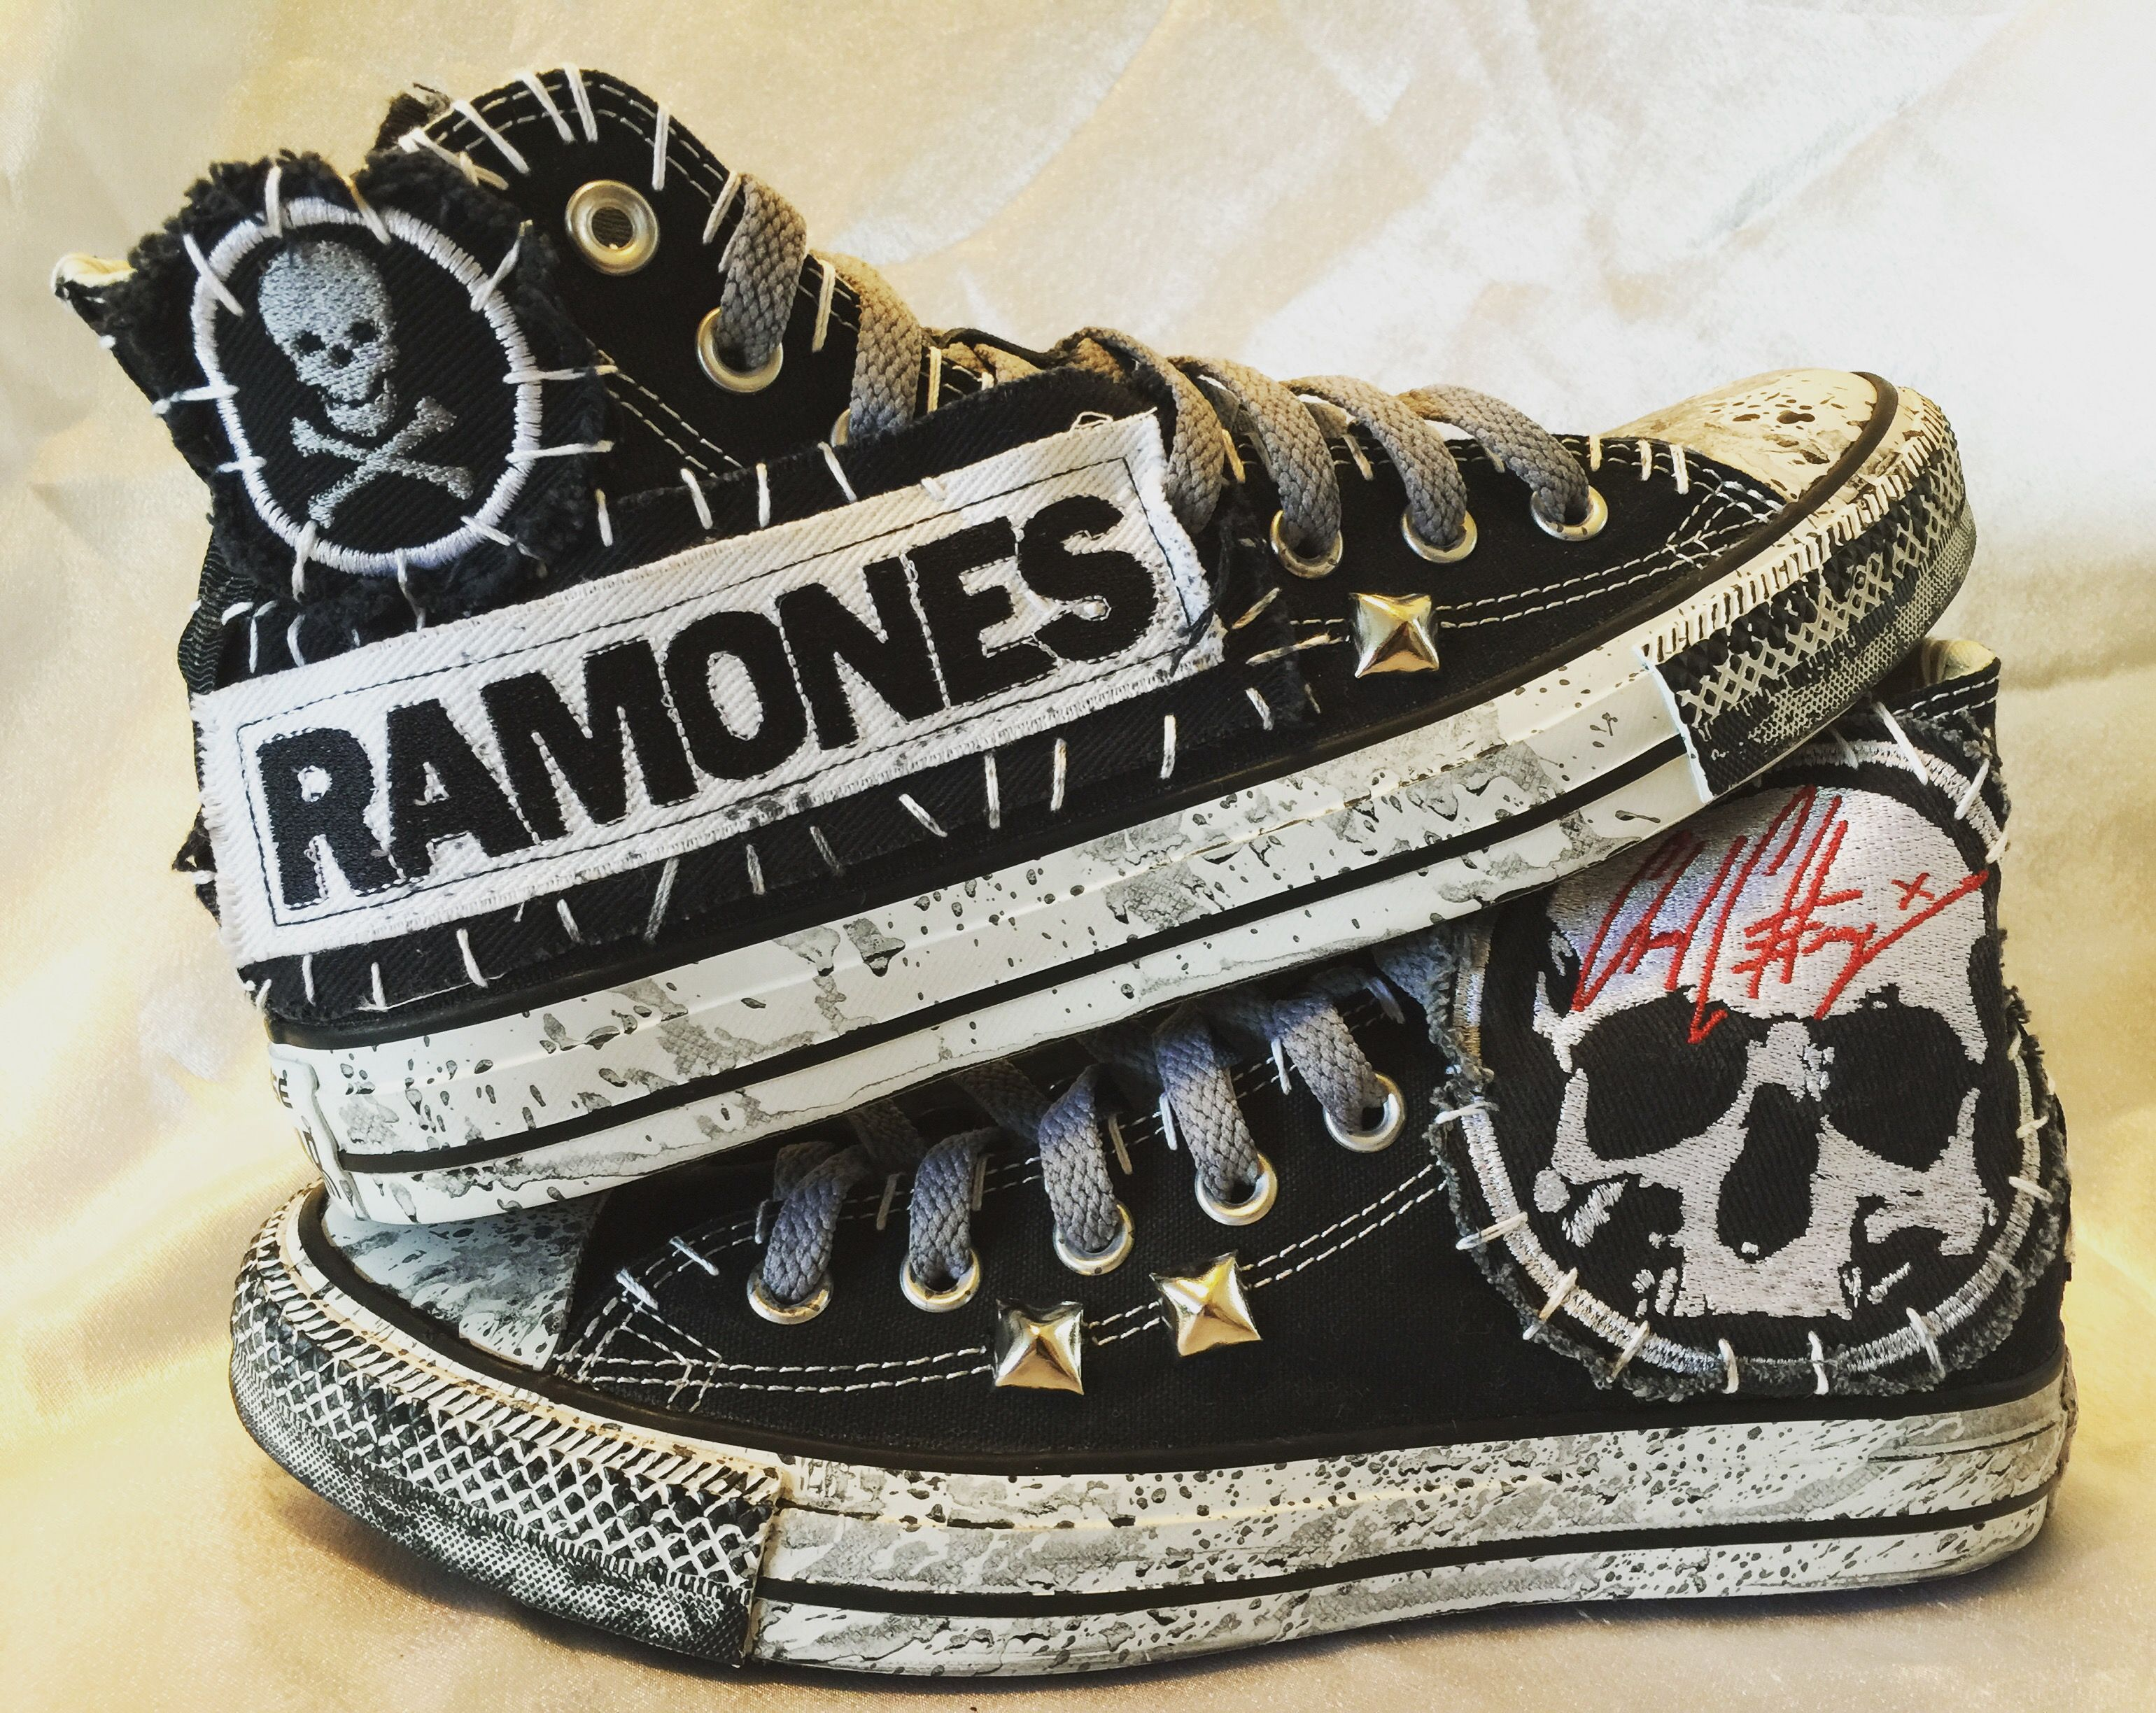 Ramones Converse All Star shoes from Chad Cherry Clothing.